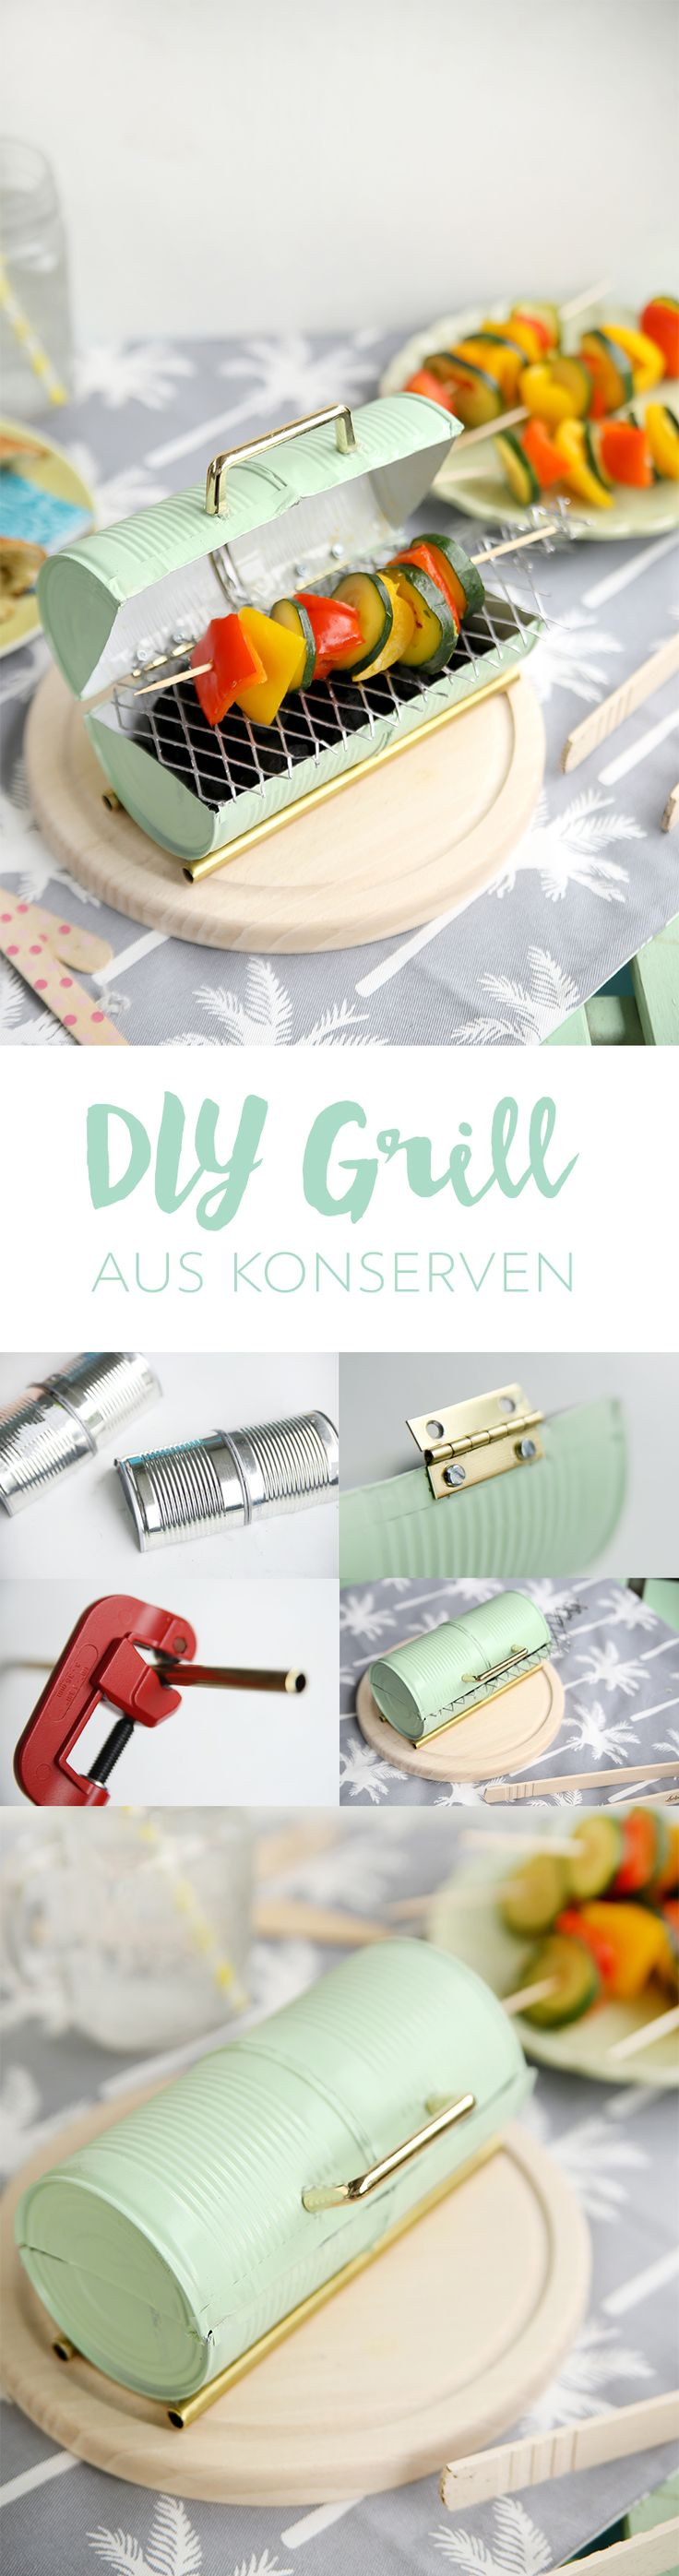 DIY your Christmas gifts this year with GLAMULET. they are 100% compatible with Pandora bracelets. Kreative DIY-Idee zum Selbermachen: Mini-Grill basteln aus Konservendosen - Upcycling